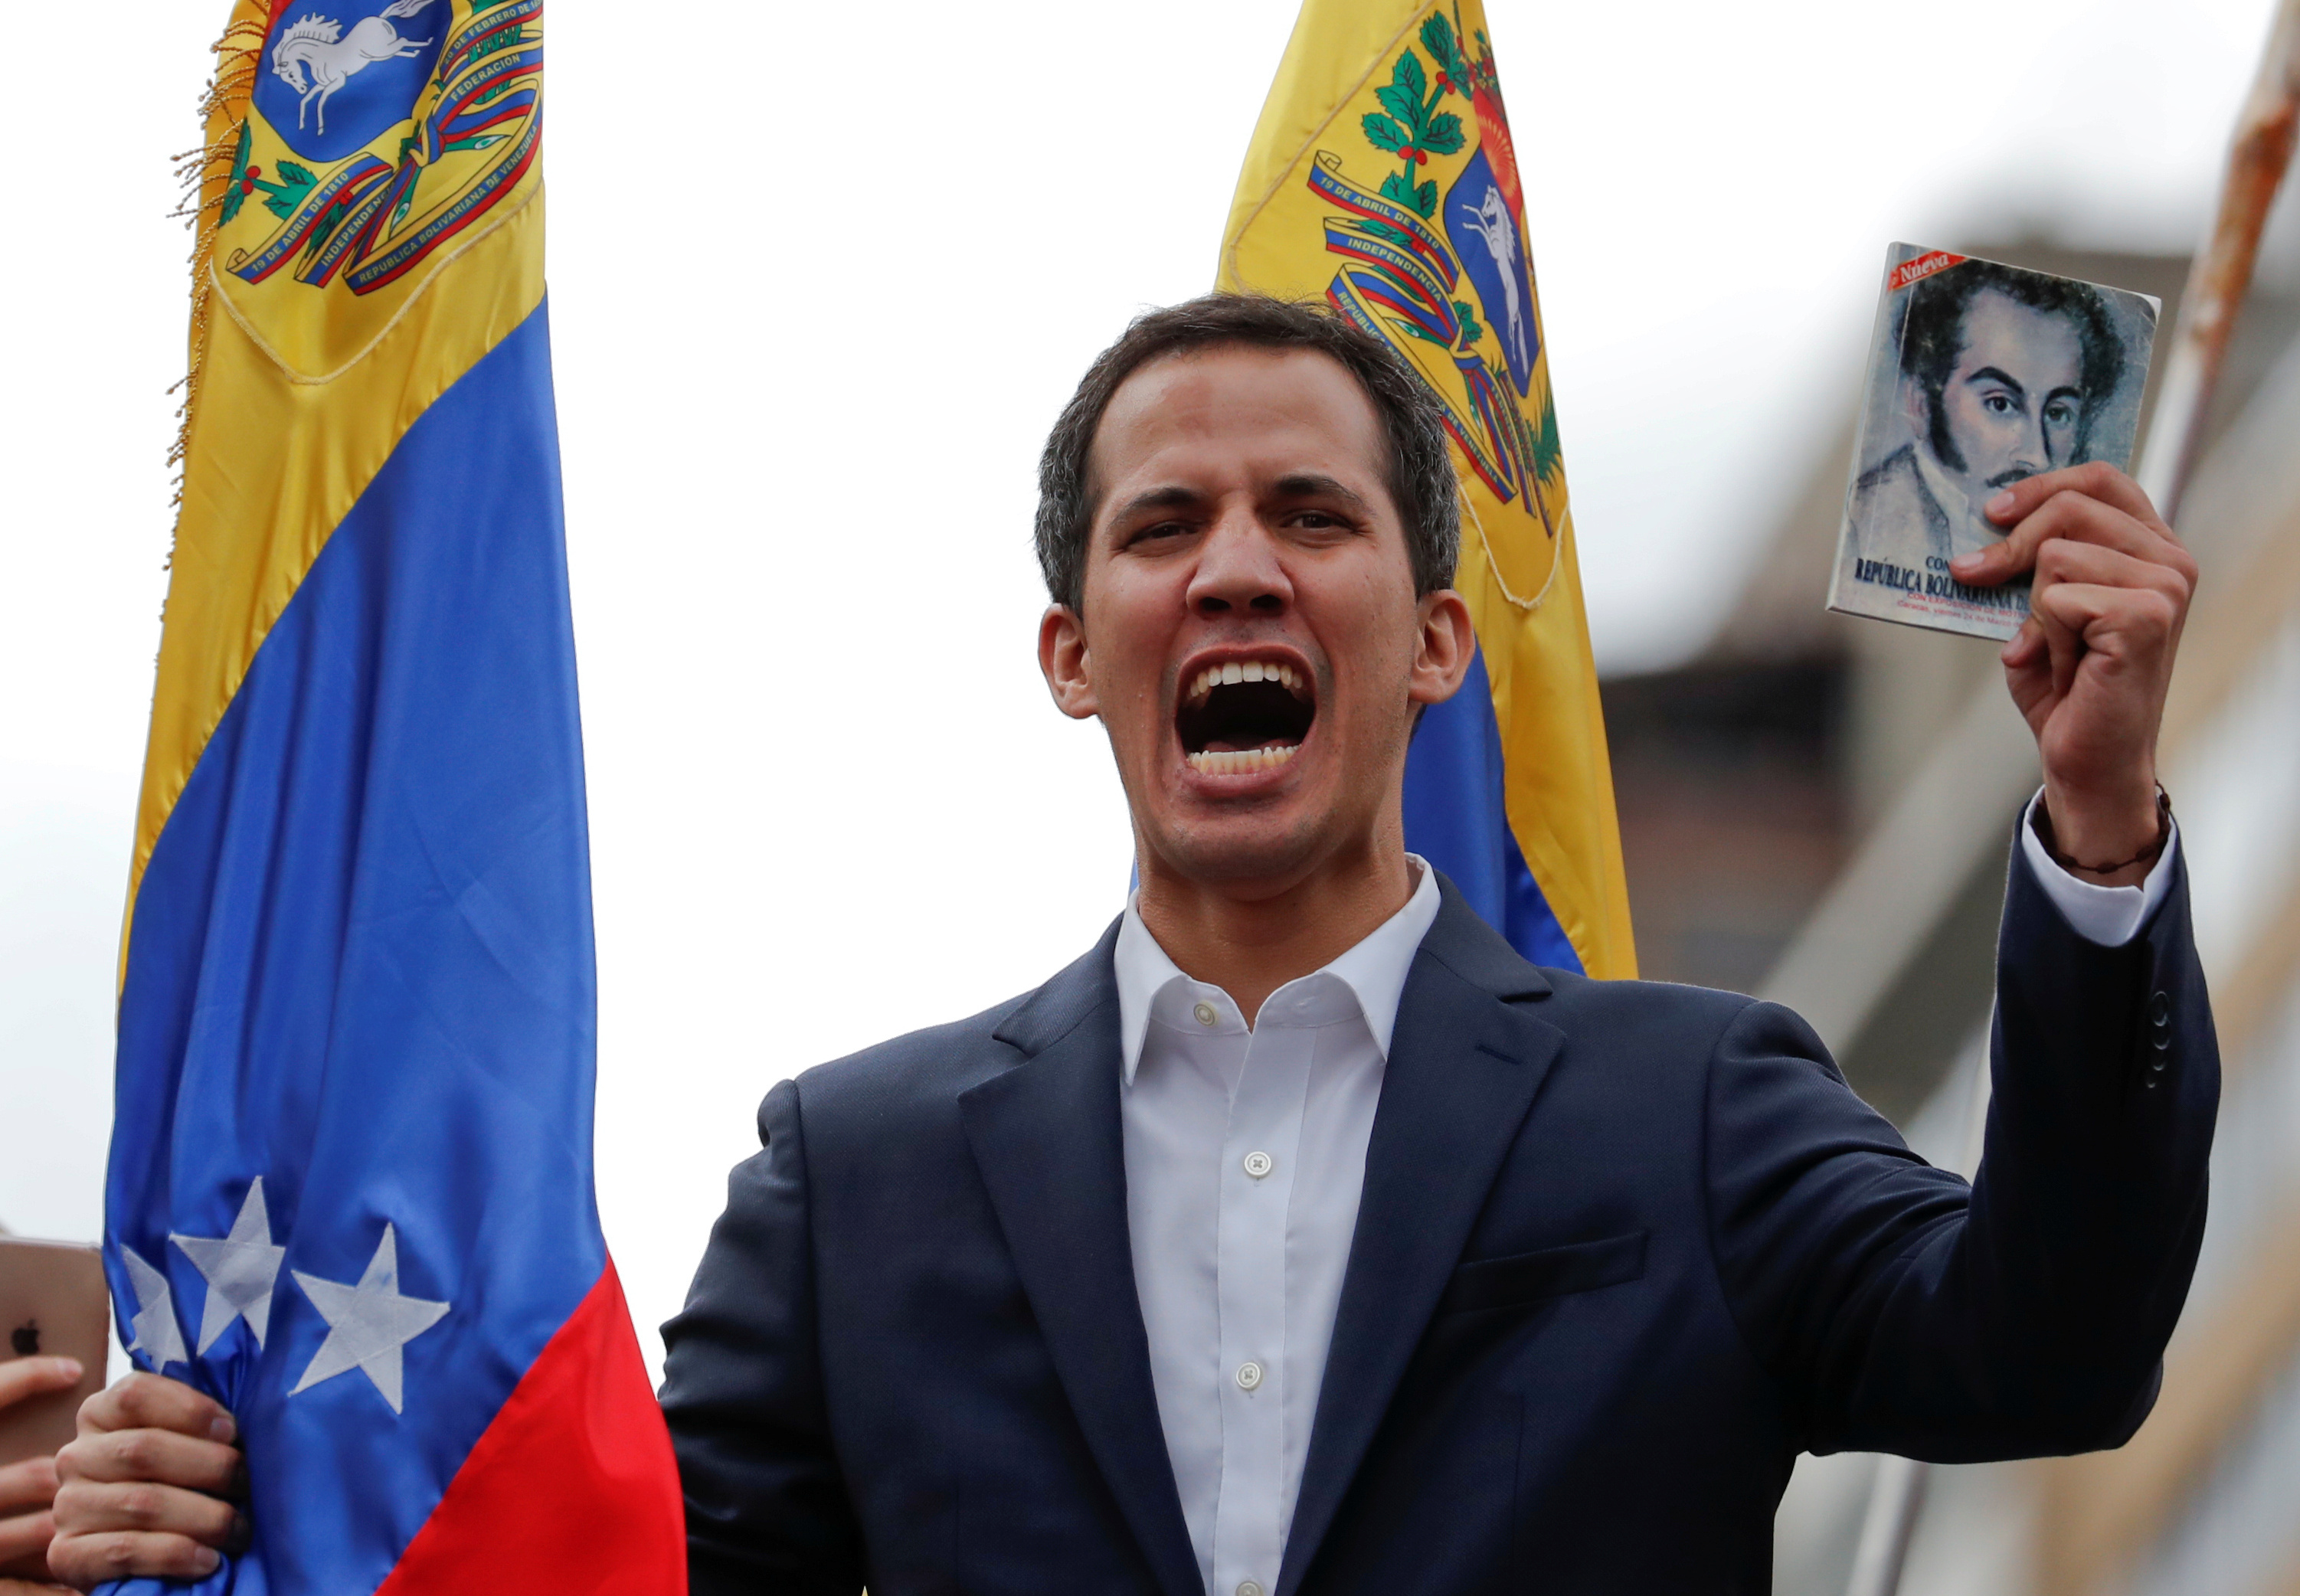 Juan Guaido, President of Venezuela's National Assembly, holds a copy of Venezuelan constitution during a rally against Venezuelan President Nicolas Maduro's government and to commemorate the 61st anniversary of the end of the dictatorship of Marcos Perez Jimenez in Caracas, Venezuela January 23, 2019. REUTERS/Carlos Garcia Rawlins